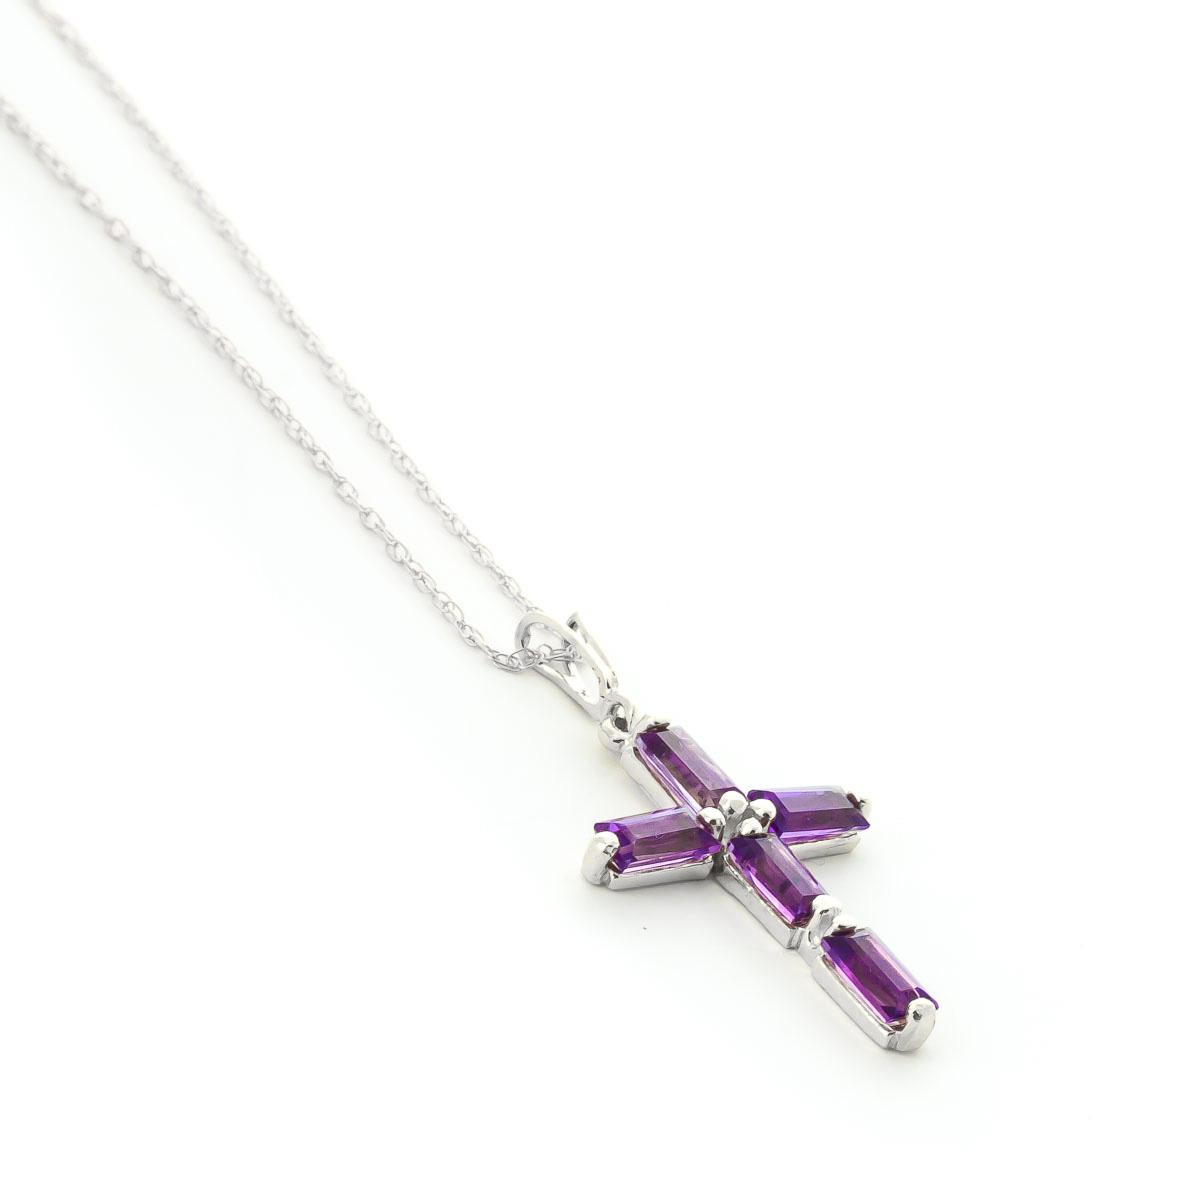 Amethyst Cross Pendant Necklace 1.15 ctw in 9ct White Gold